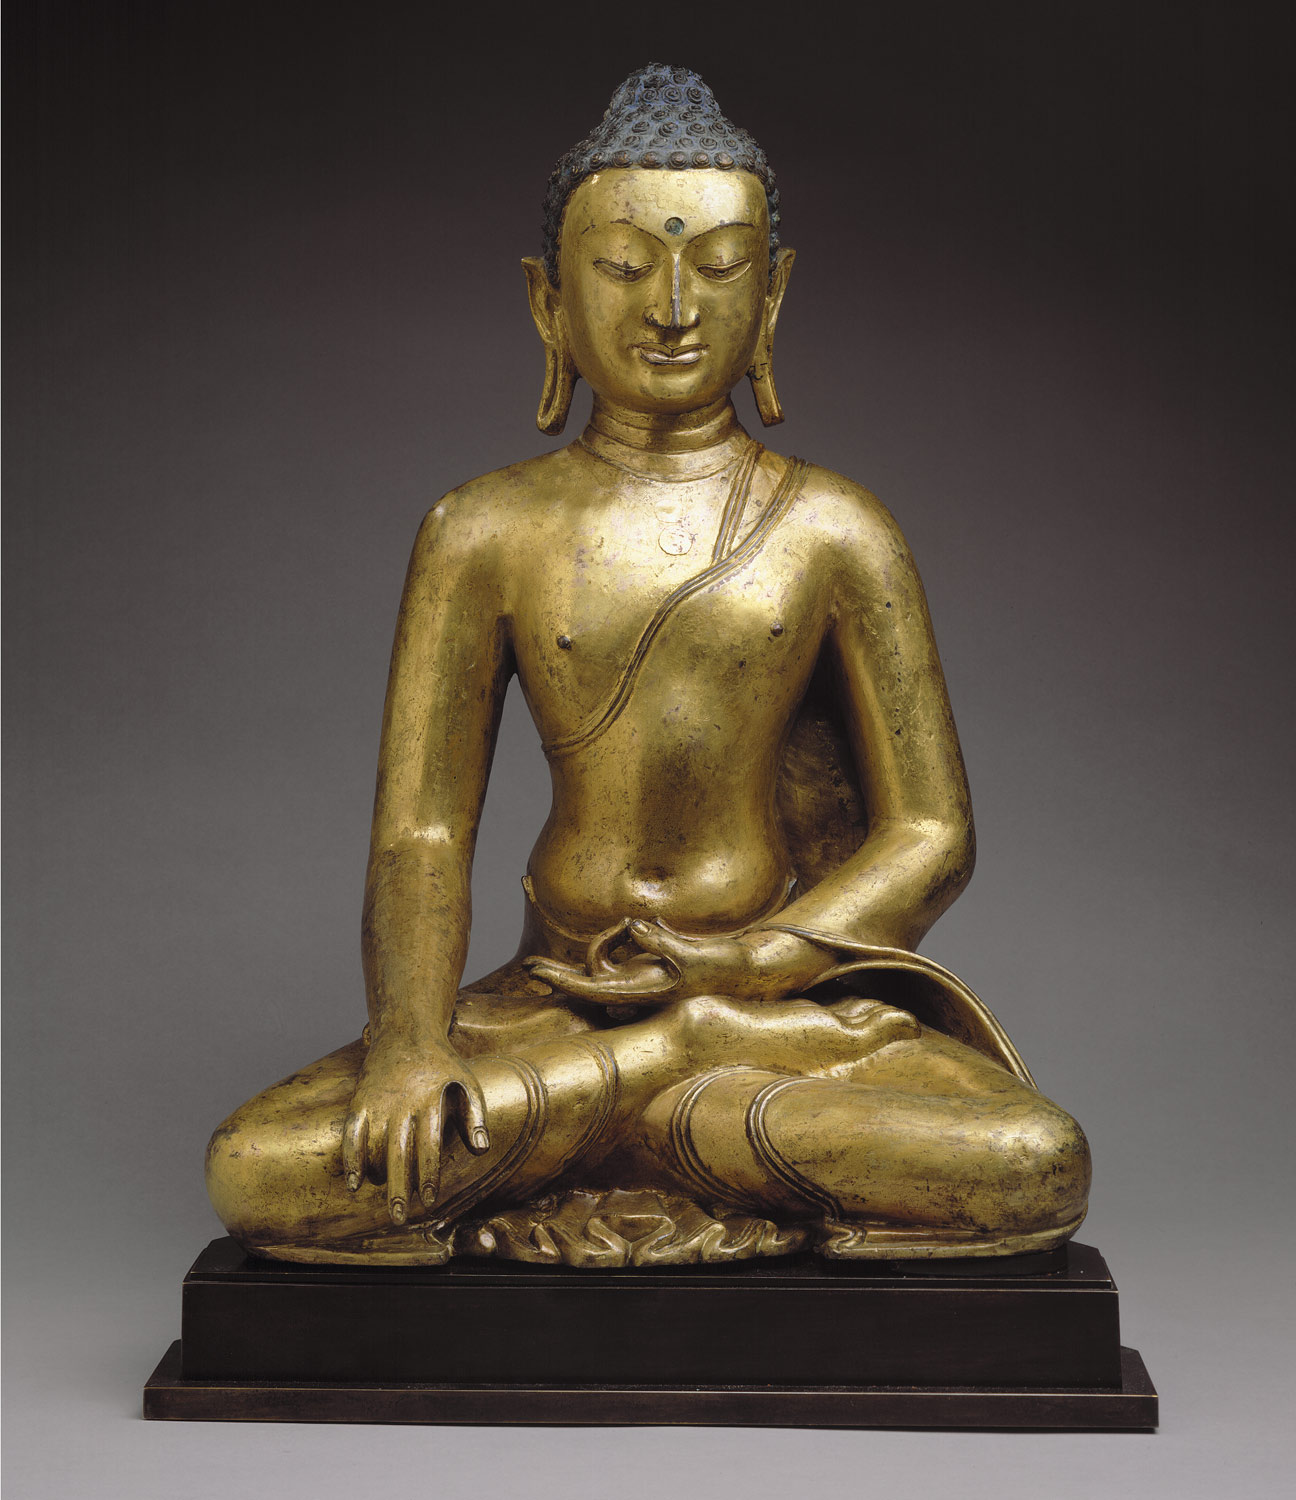 Buddha Shakyamuni or Akshobhya, the Buddha of the East